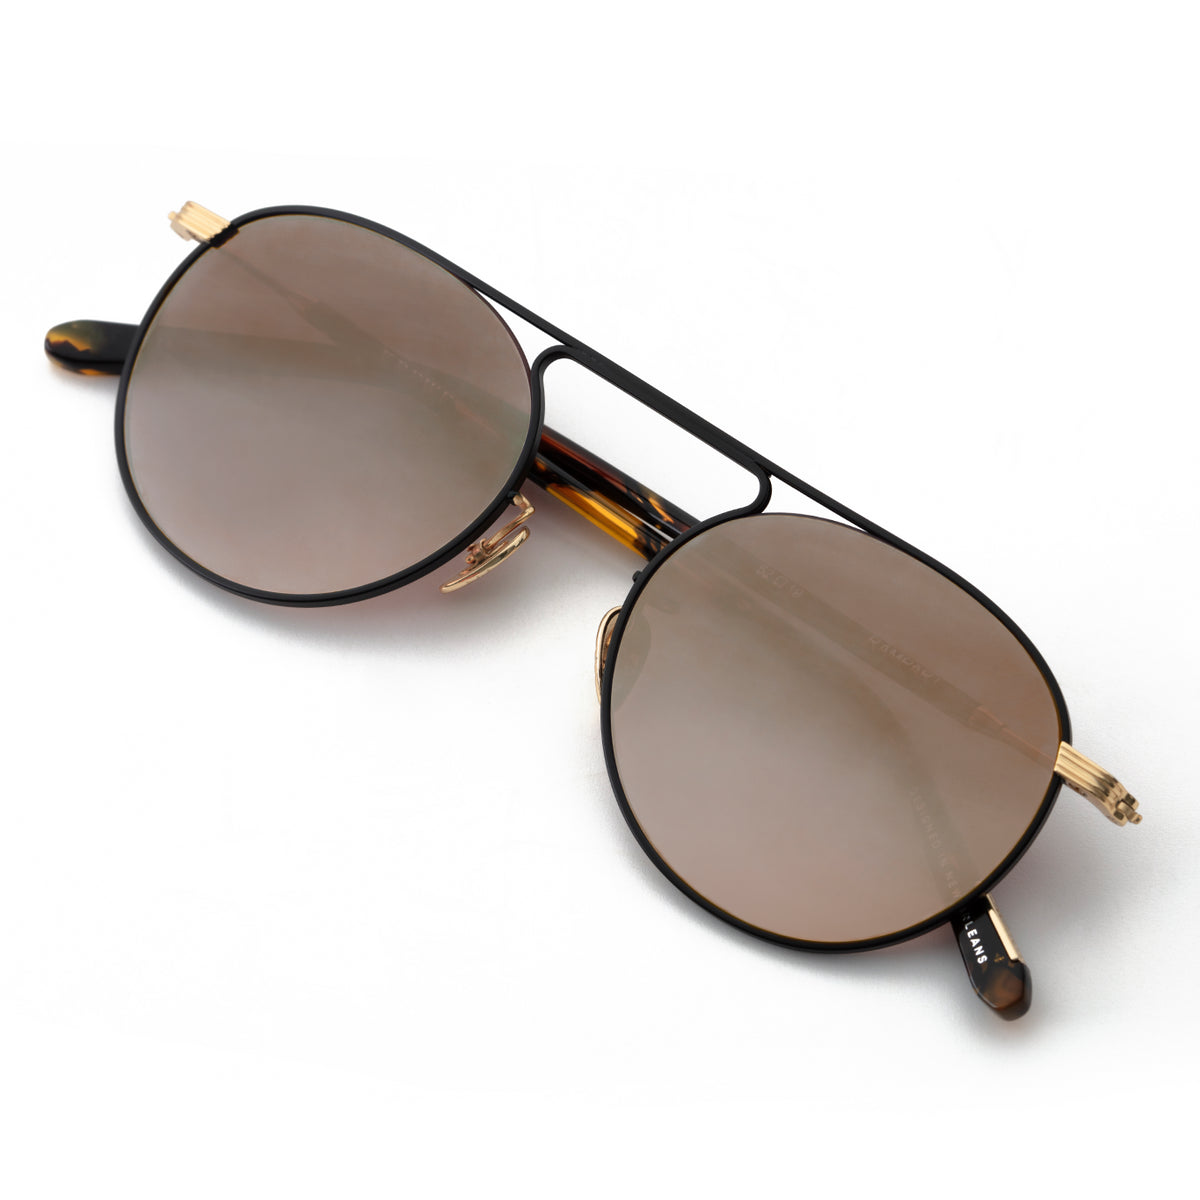 RAMPART | Matte Black + Honey 24K handcrafted acetate sunglasses